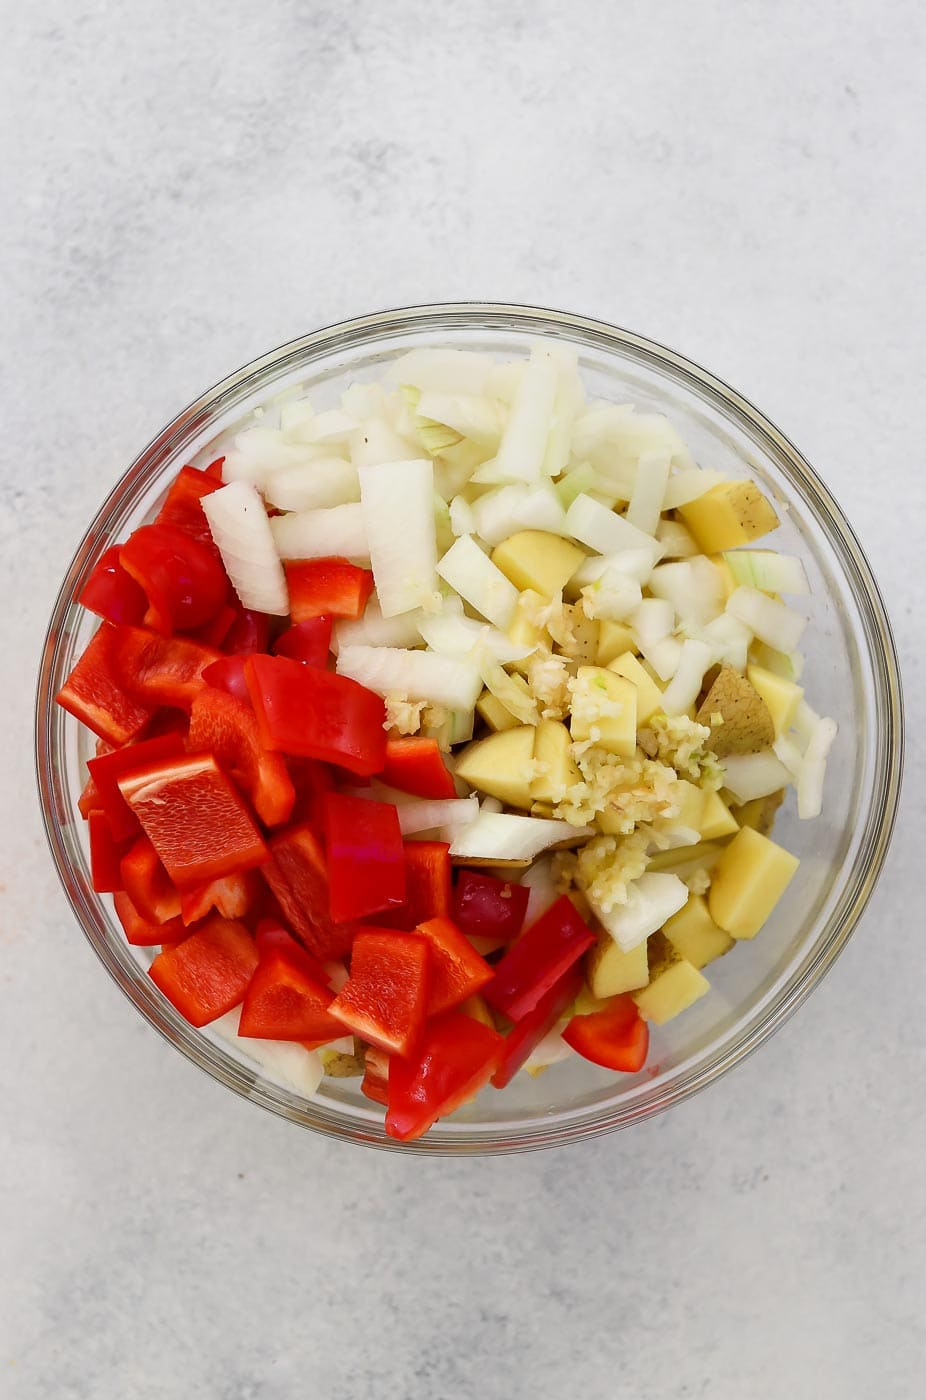 Chopped peppers, onion and potatoes in a bowl,